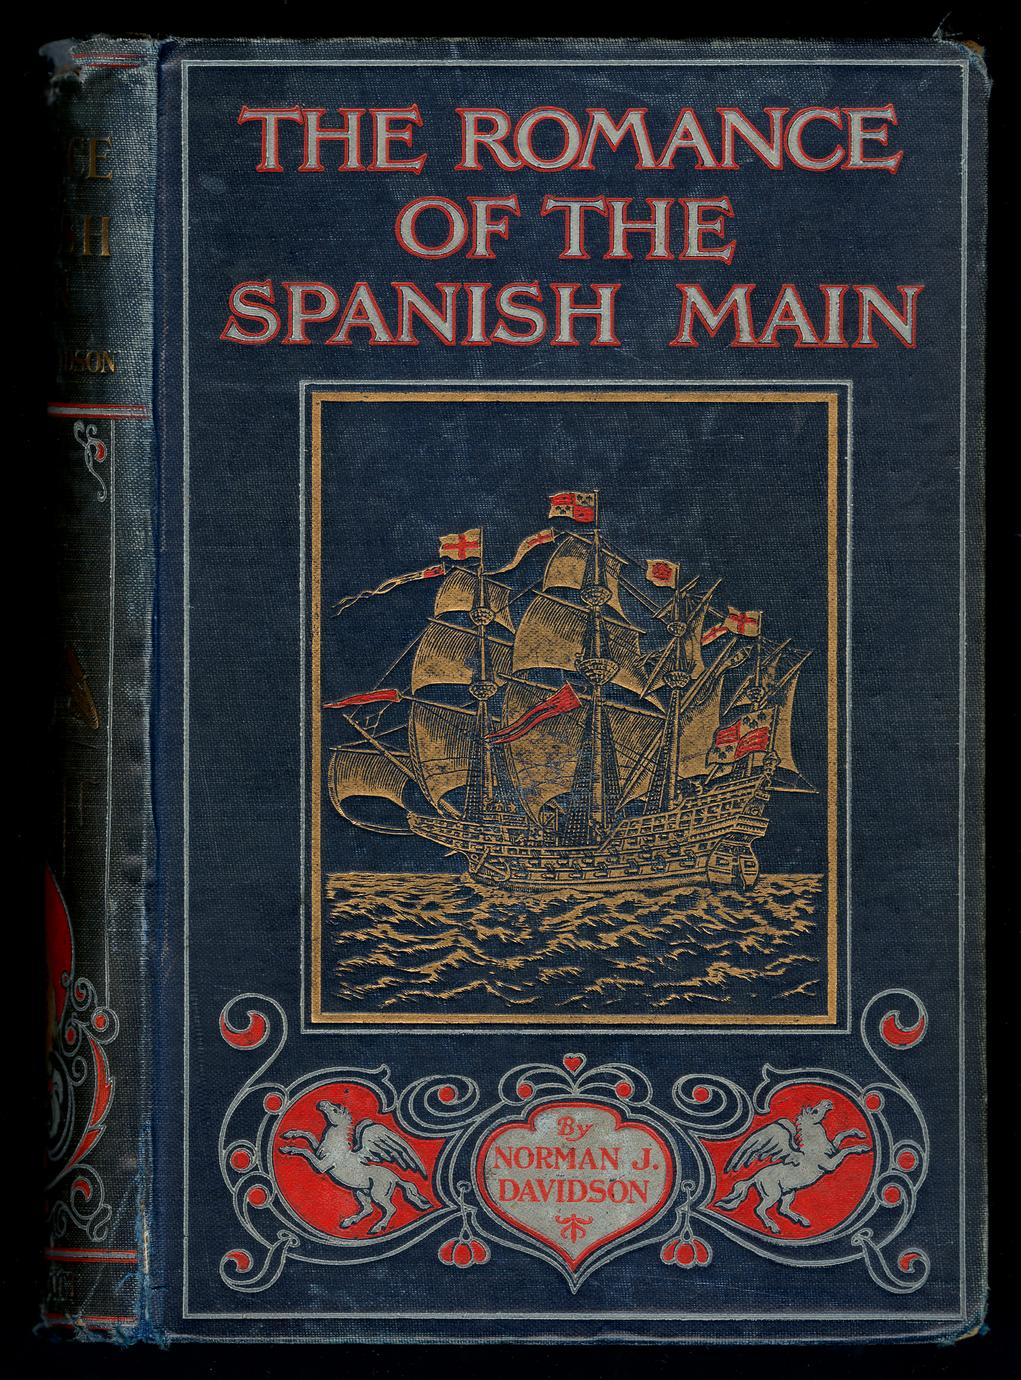 The romance of the Spanish Main (1 of 2)